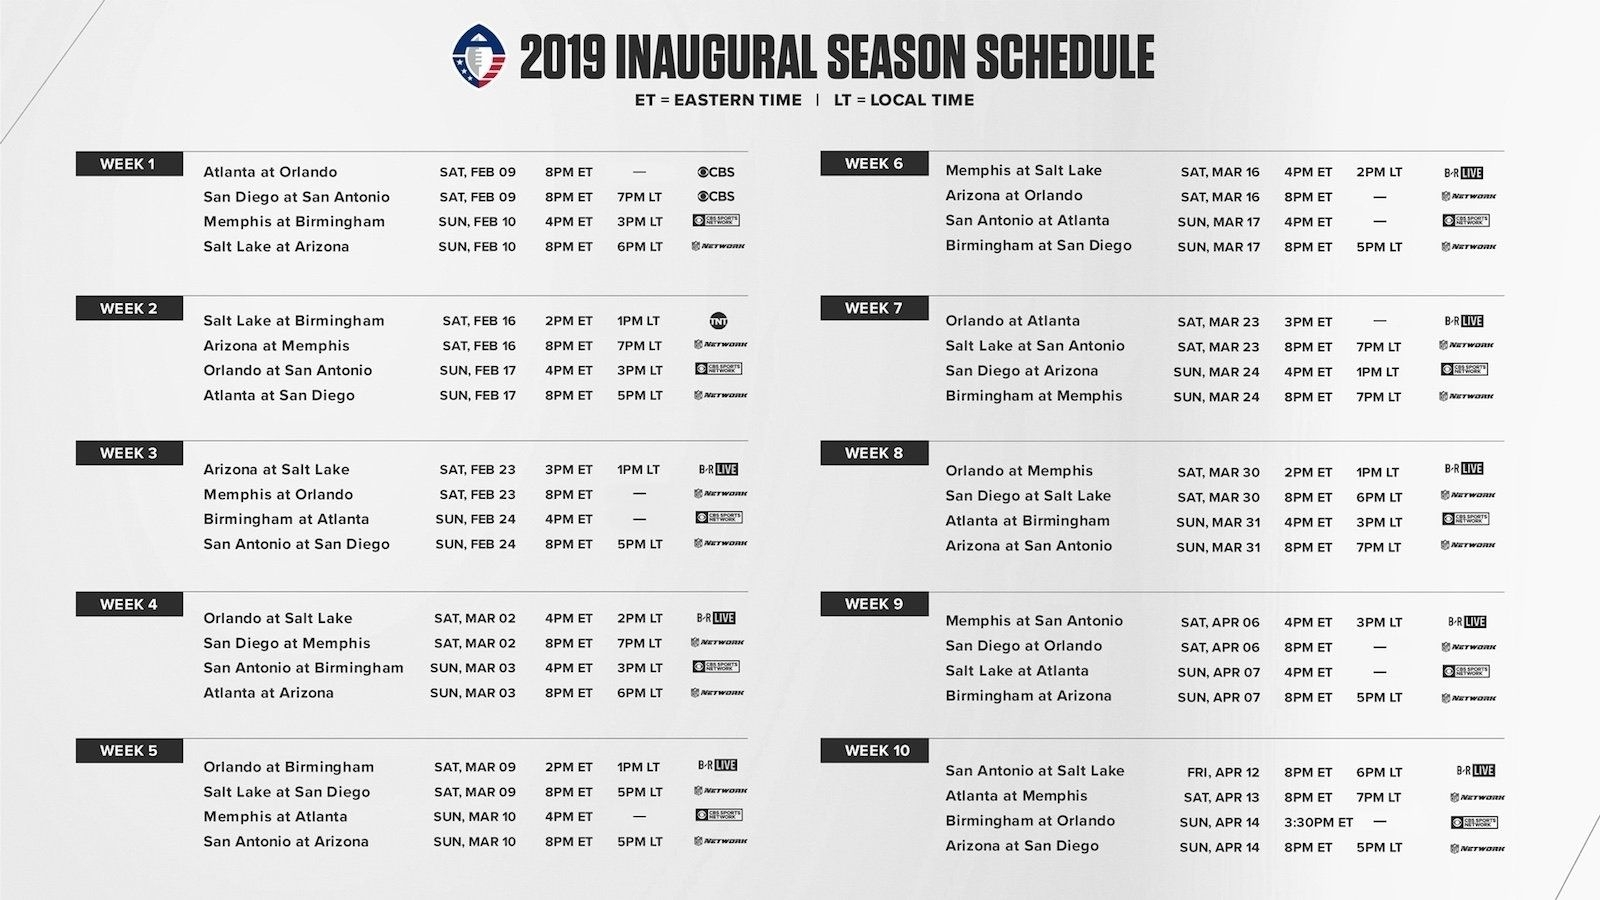 Printable Nfl Schedule For 2019 2020 In 2020 | Printable Nfl within Nfl Schedule 2019 2020 Printable